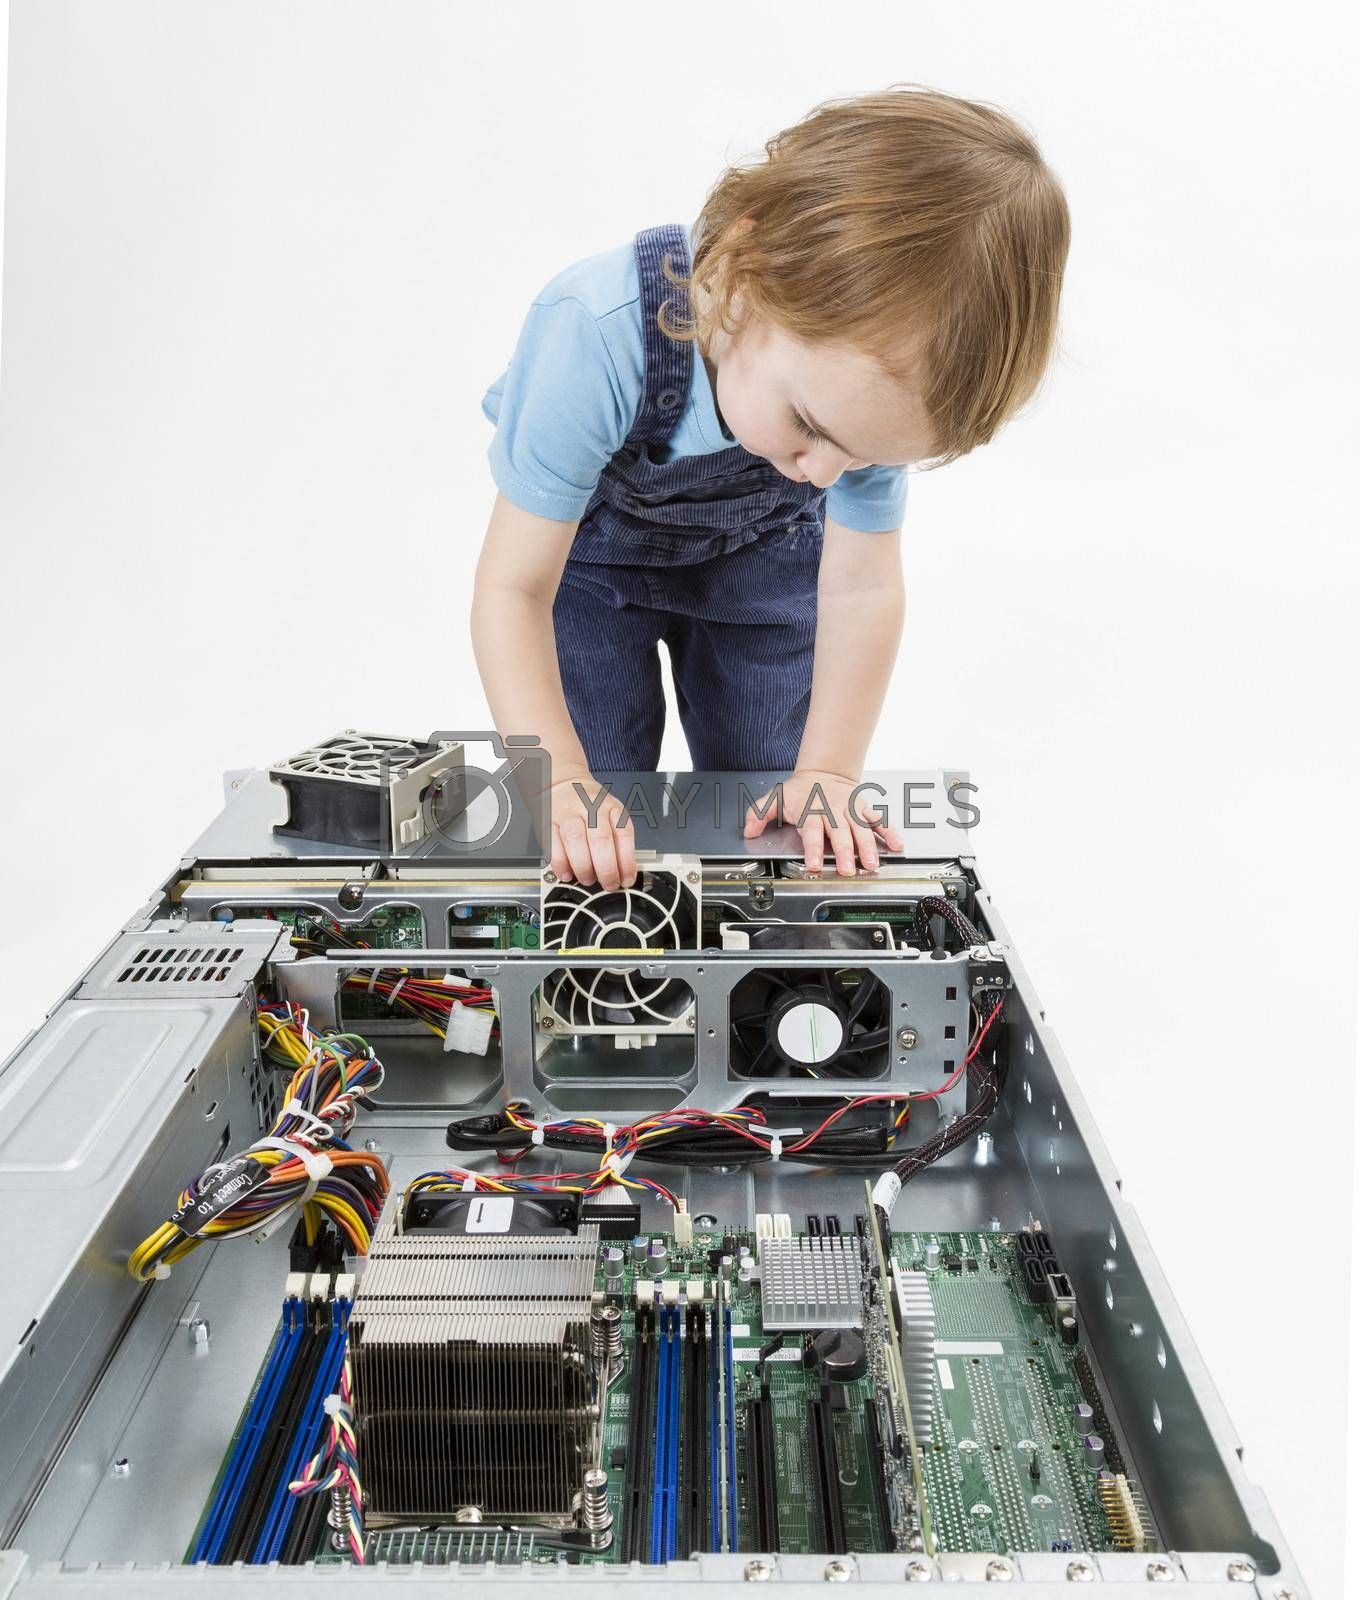 young child working on network server. studio shot in grey background